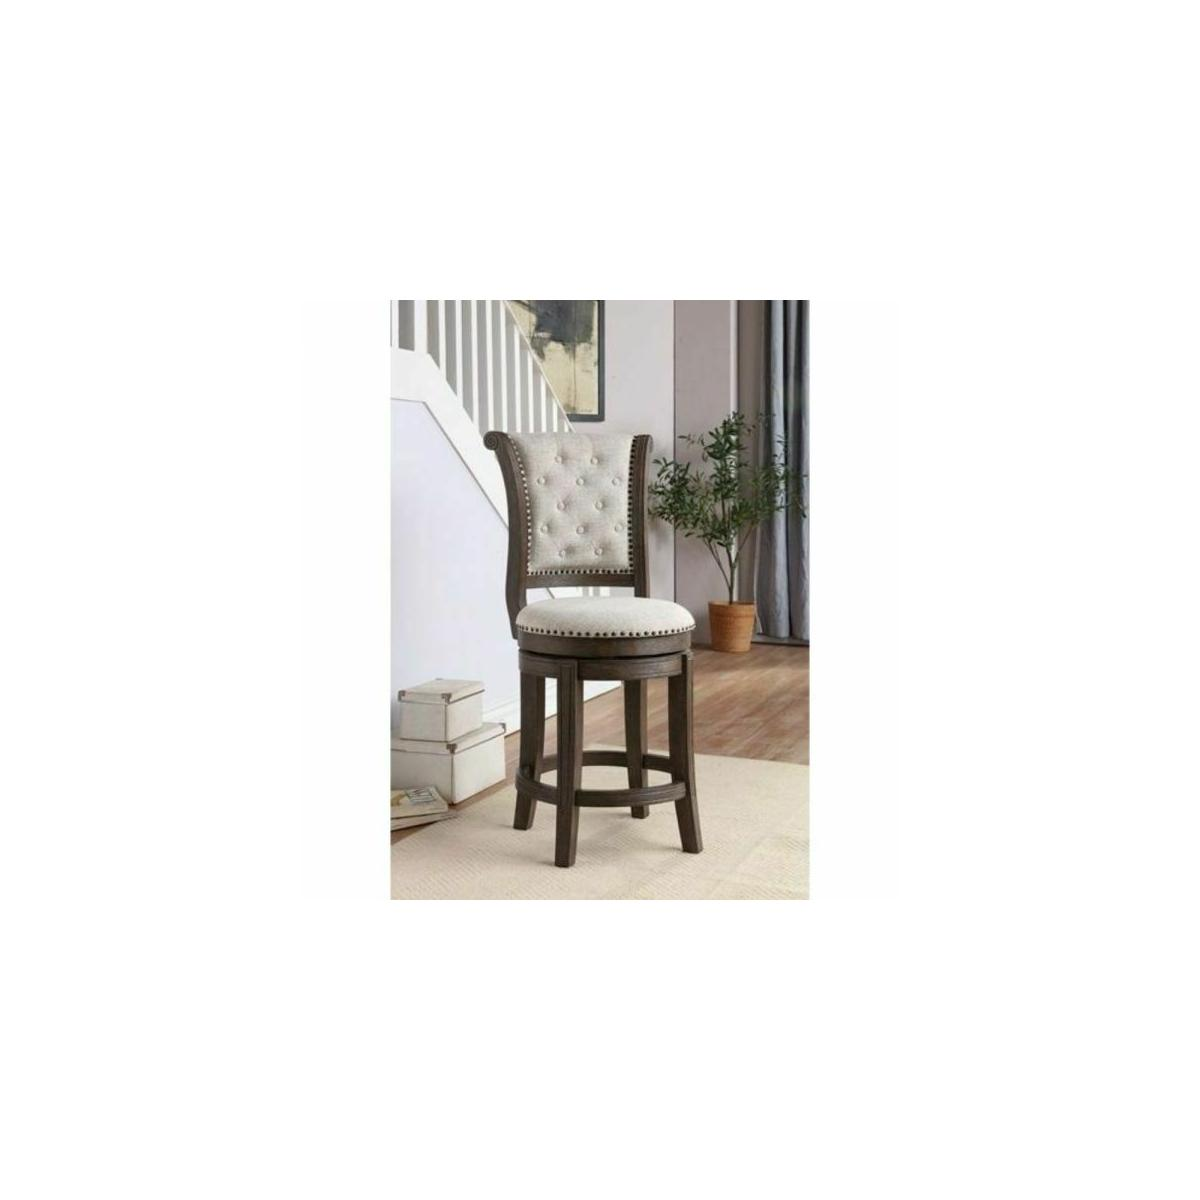 ACME Glison Bar Chair (1Pc) - 96457 - Beige Fabric & Walnut